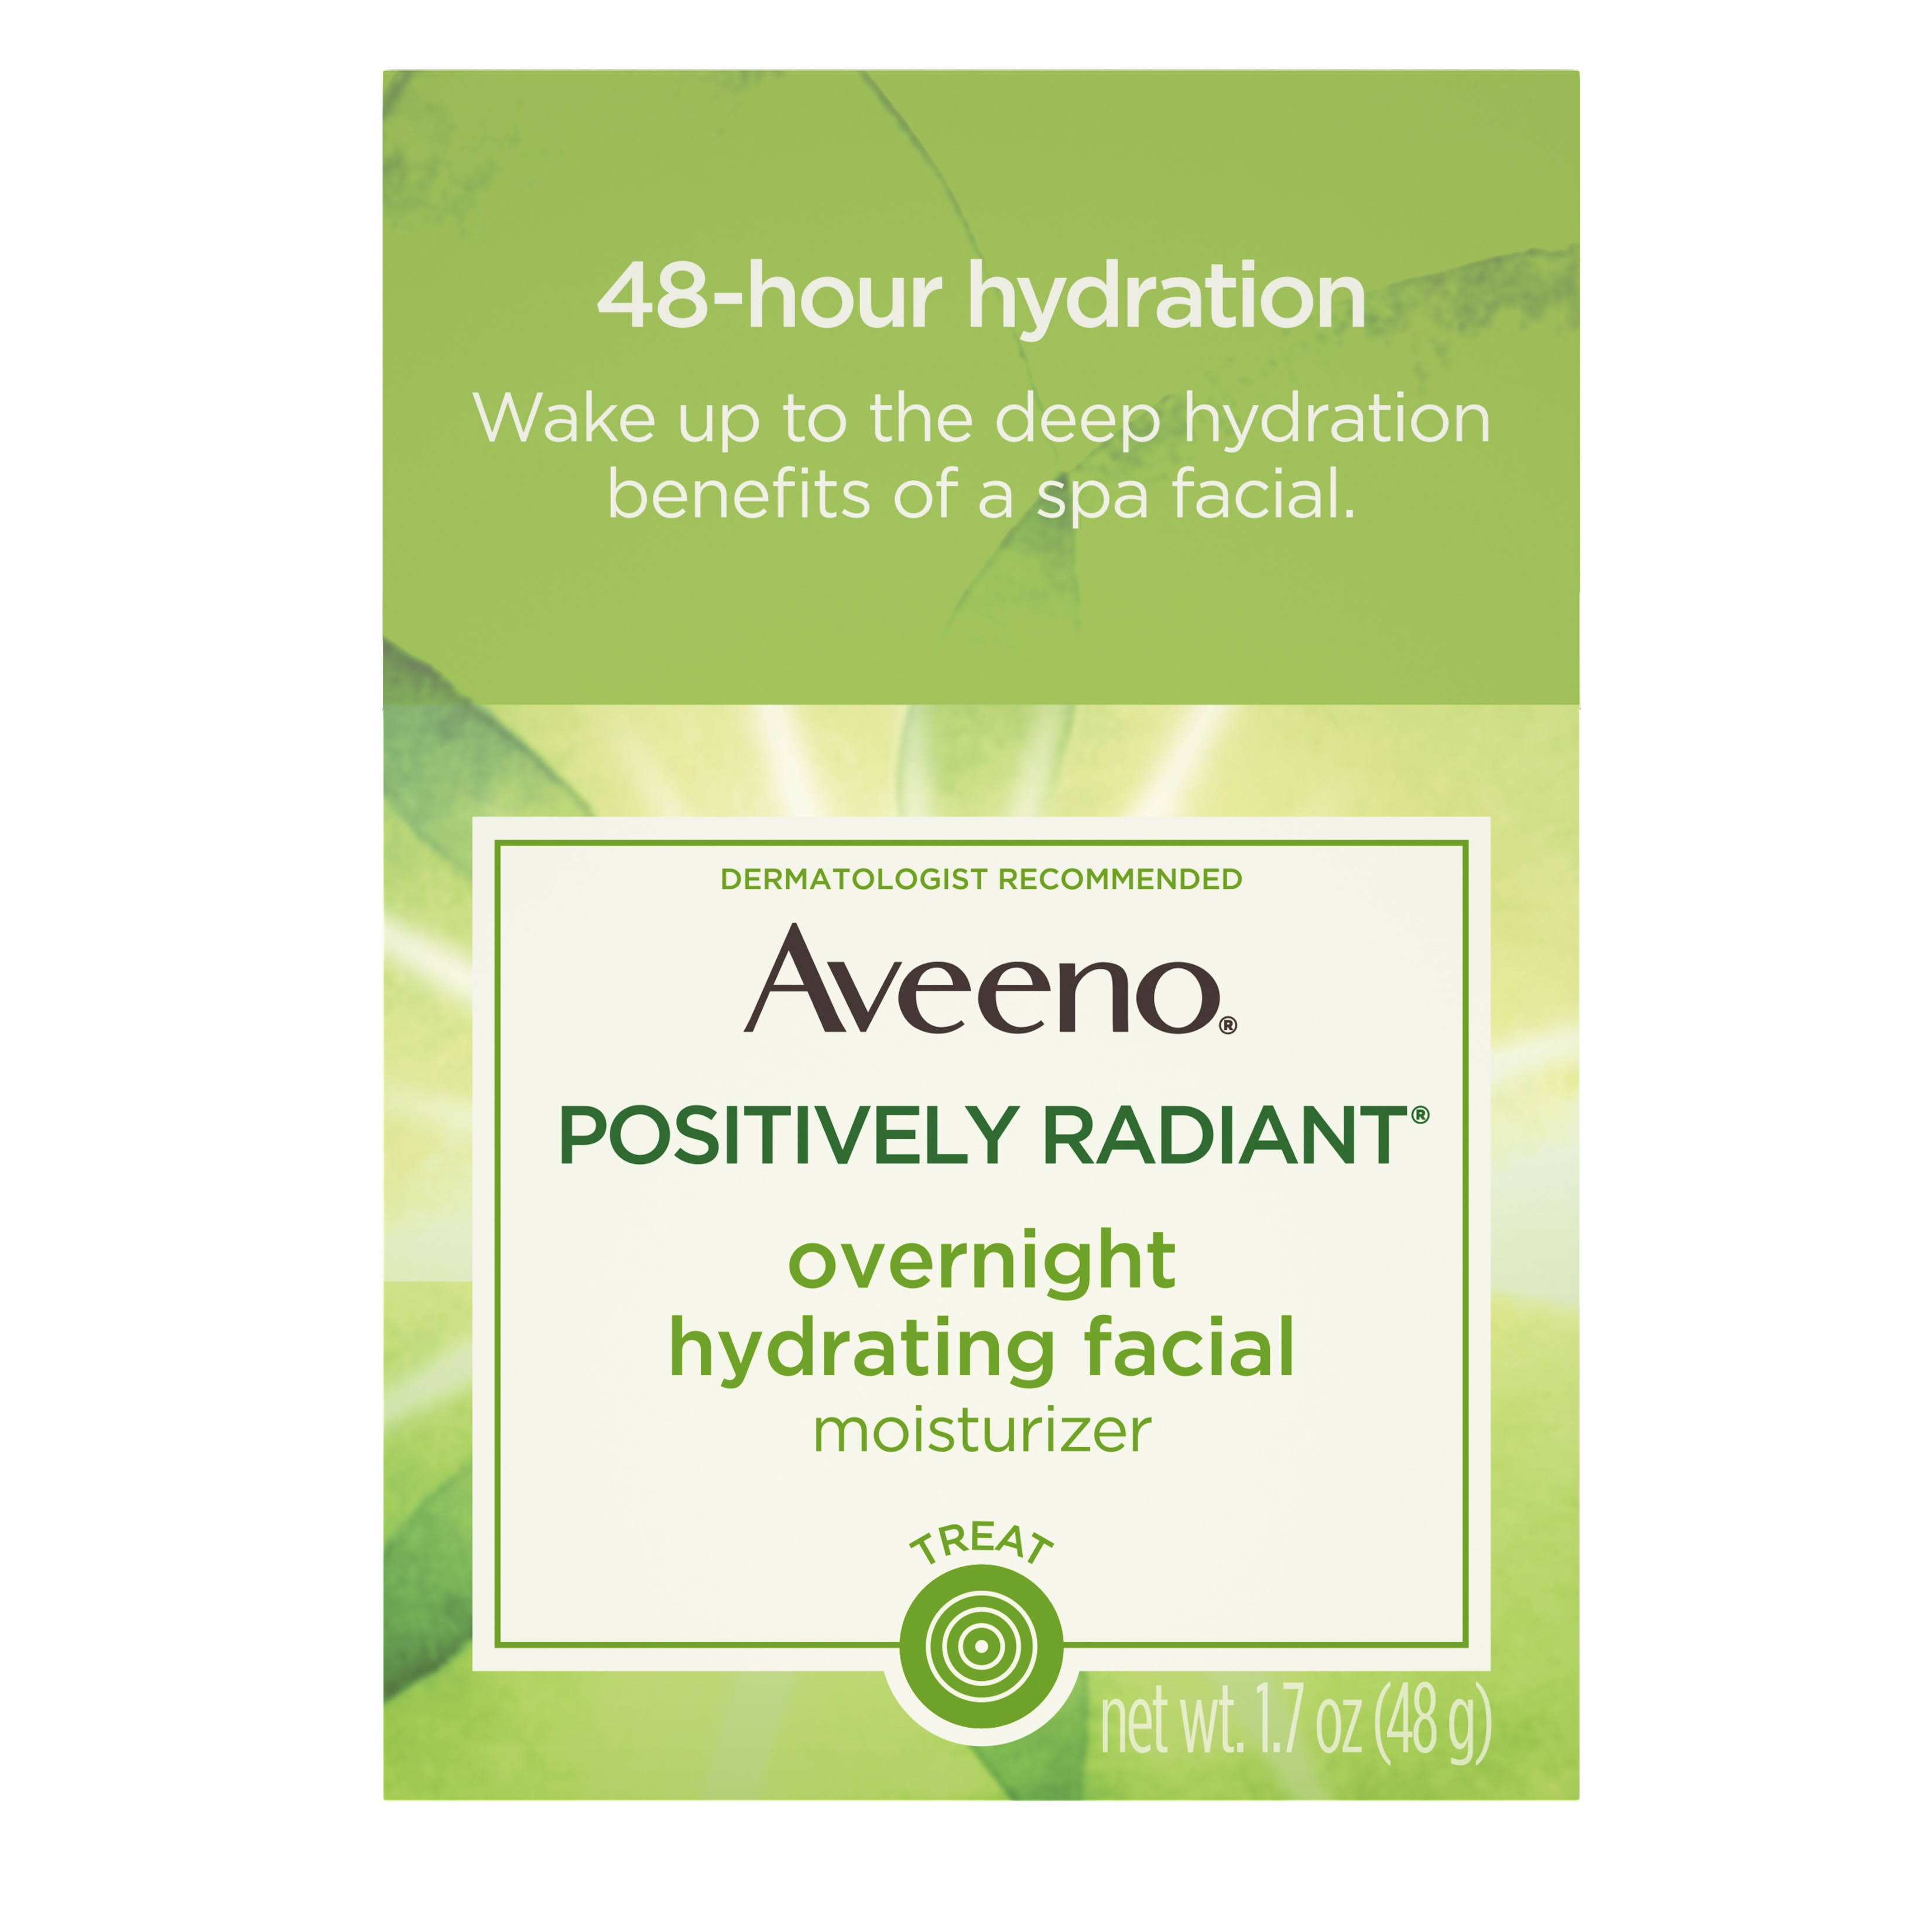 Aveeno Active Naturals Positively Radiant Moisturizer, Overnight Hydrating Facial - 1.7 oz